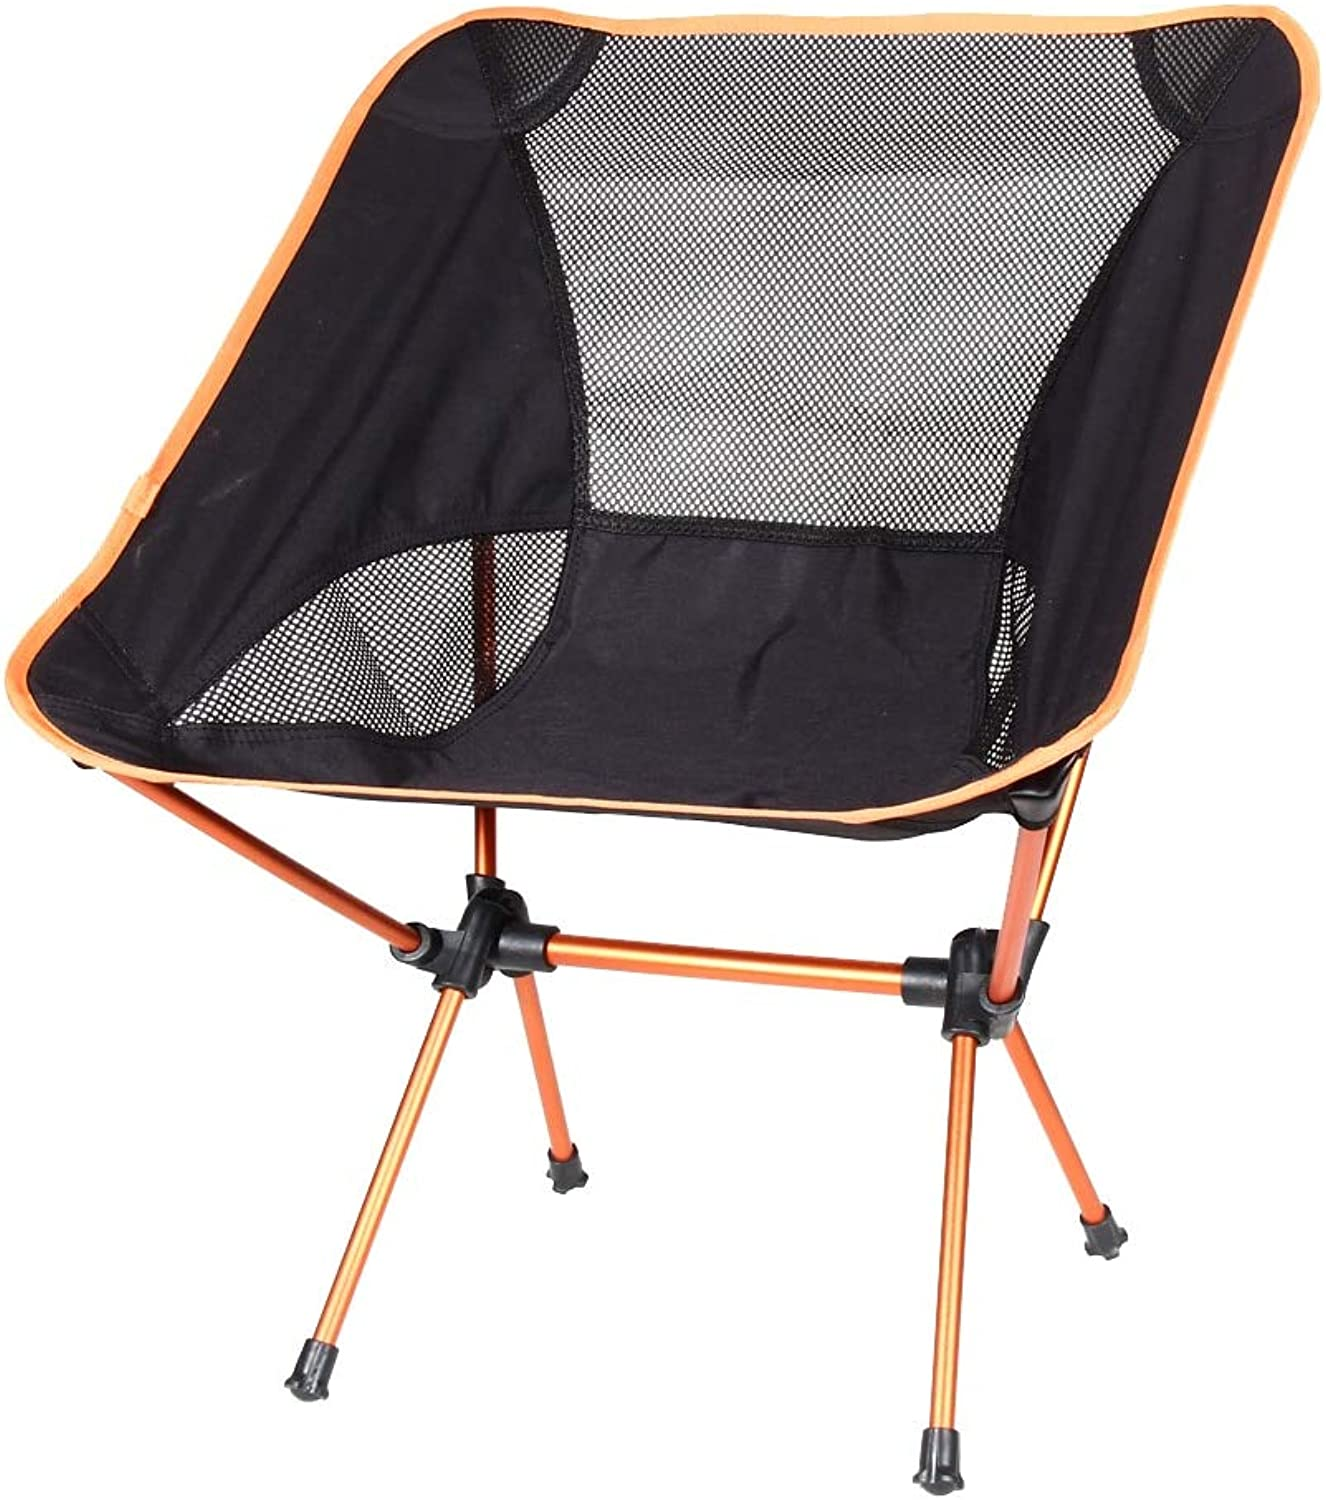 2 pcs of Lightweight Beach Chair Outdoor Portable Folding Lightweight Camping Chair for Hiking Fishing Picnic Barbecue Vocation Casual